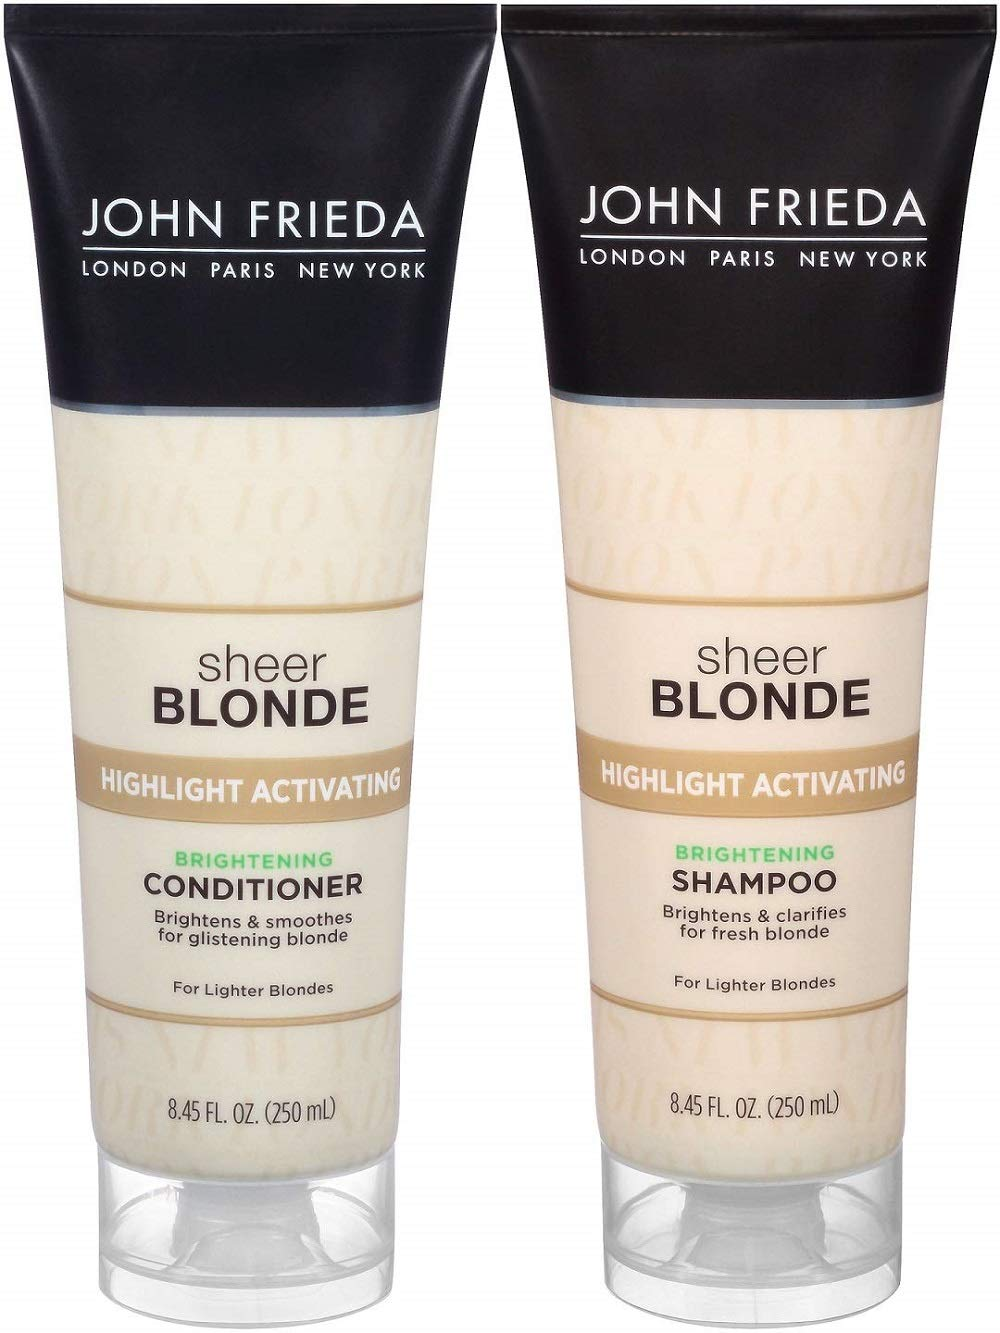 John Frieda Sheer Blonde Highlight Activating Enhancing, DUO set Shampoo + Conditioner (for Lighter Blondes)